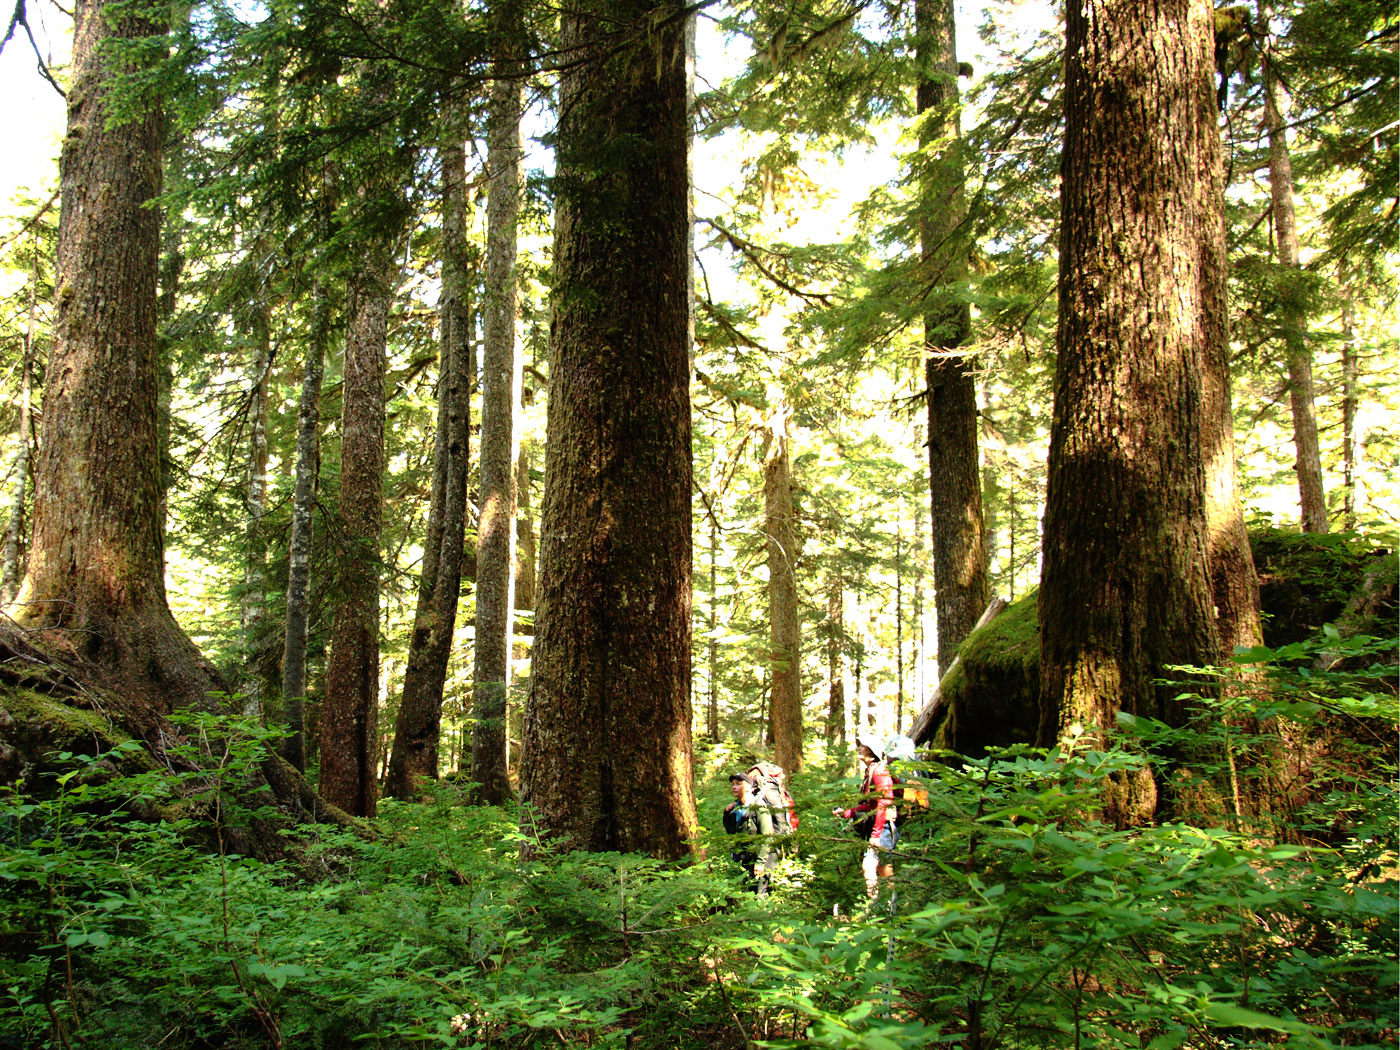 Big trees. Vancouver Island, BC. Photo by Andrée Fredettte